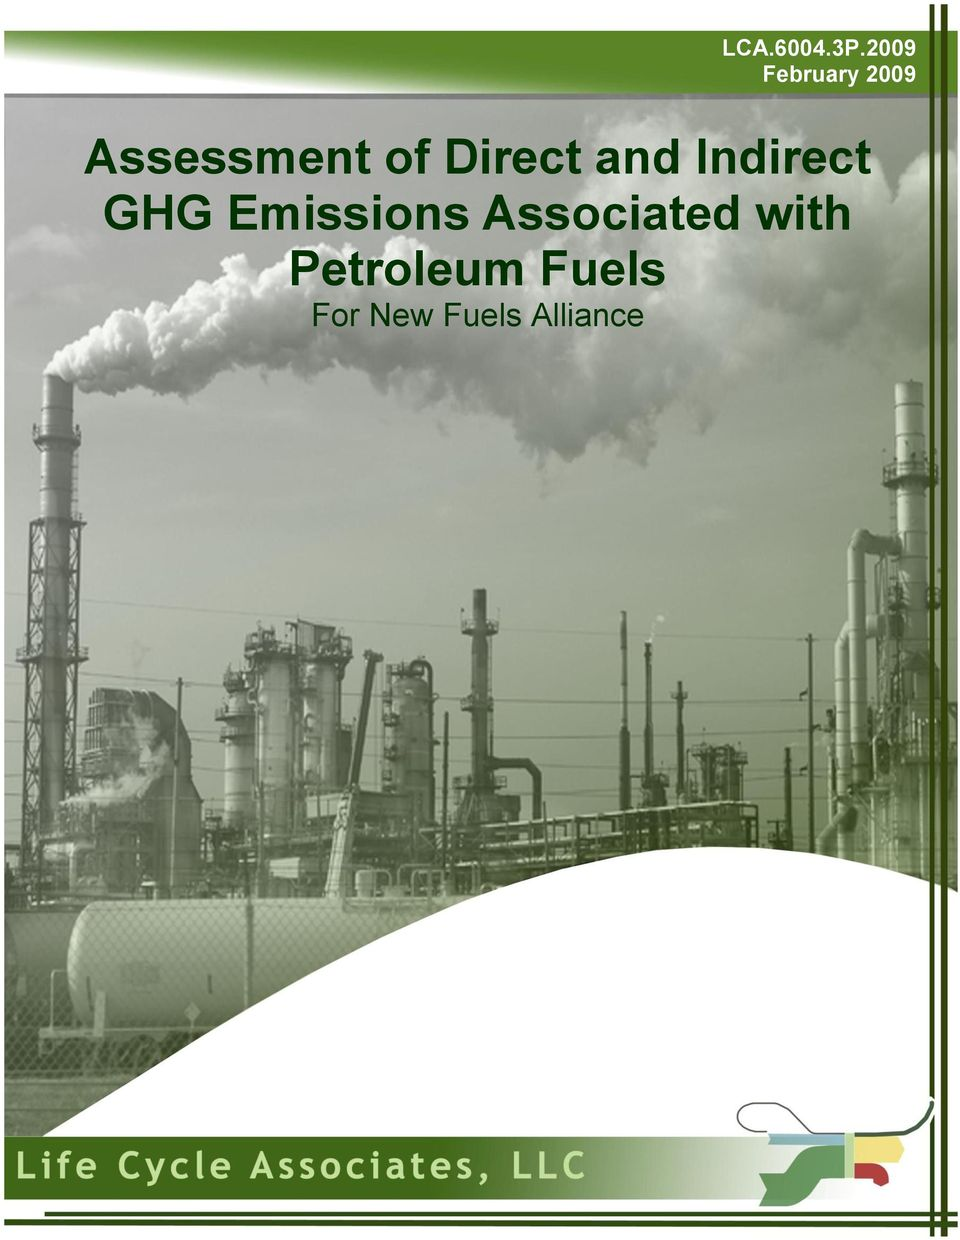 Direct and Indirect GHG Emissions Associated